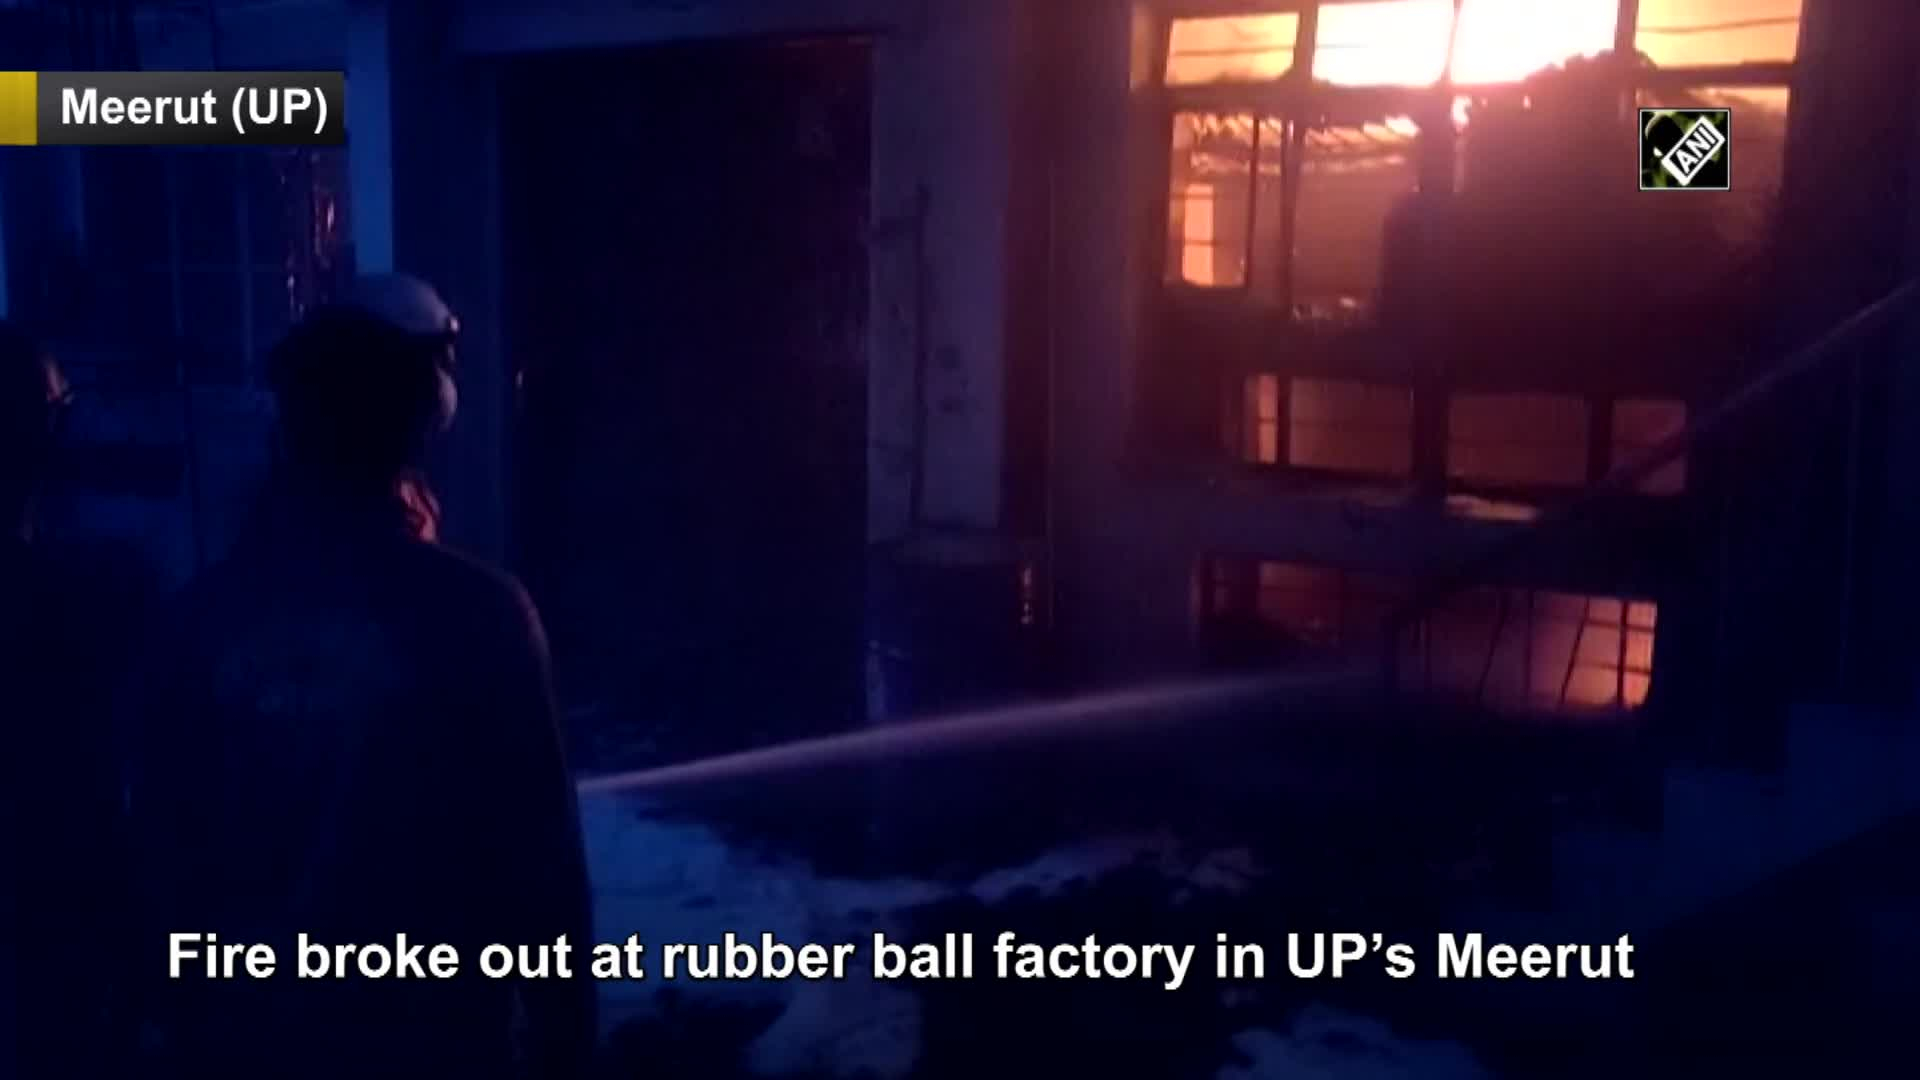 Fire breaks out at rubber ball factory in UP's Meerut [Video]